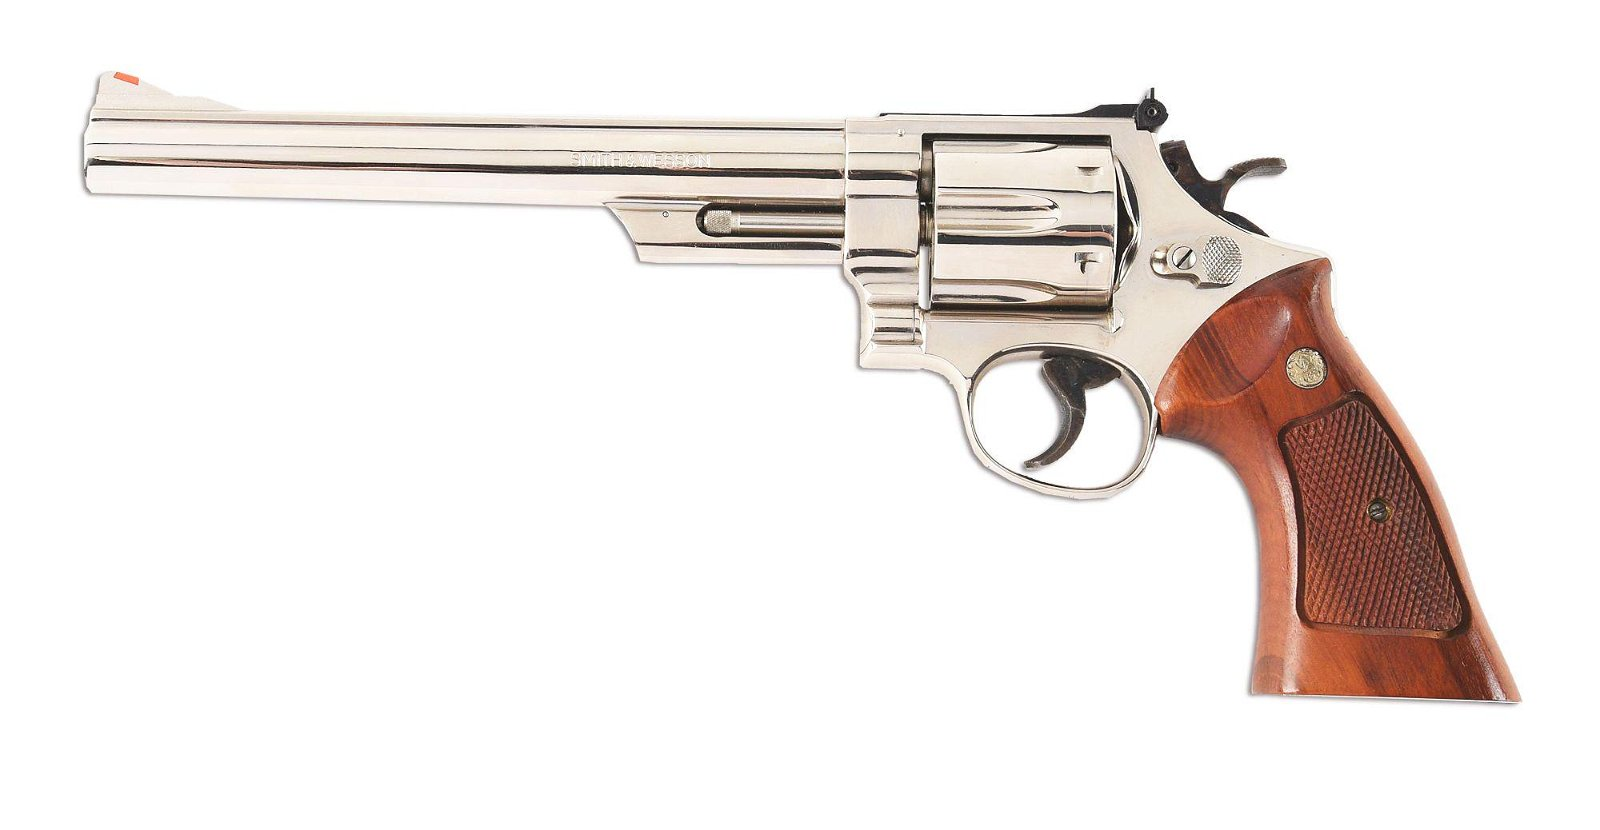 (M) SMITH & WESSON MODEL 29-2 .44 MAGNUM REVOLVER WITH